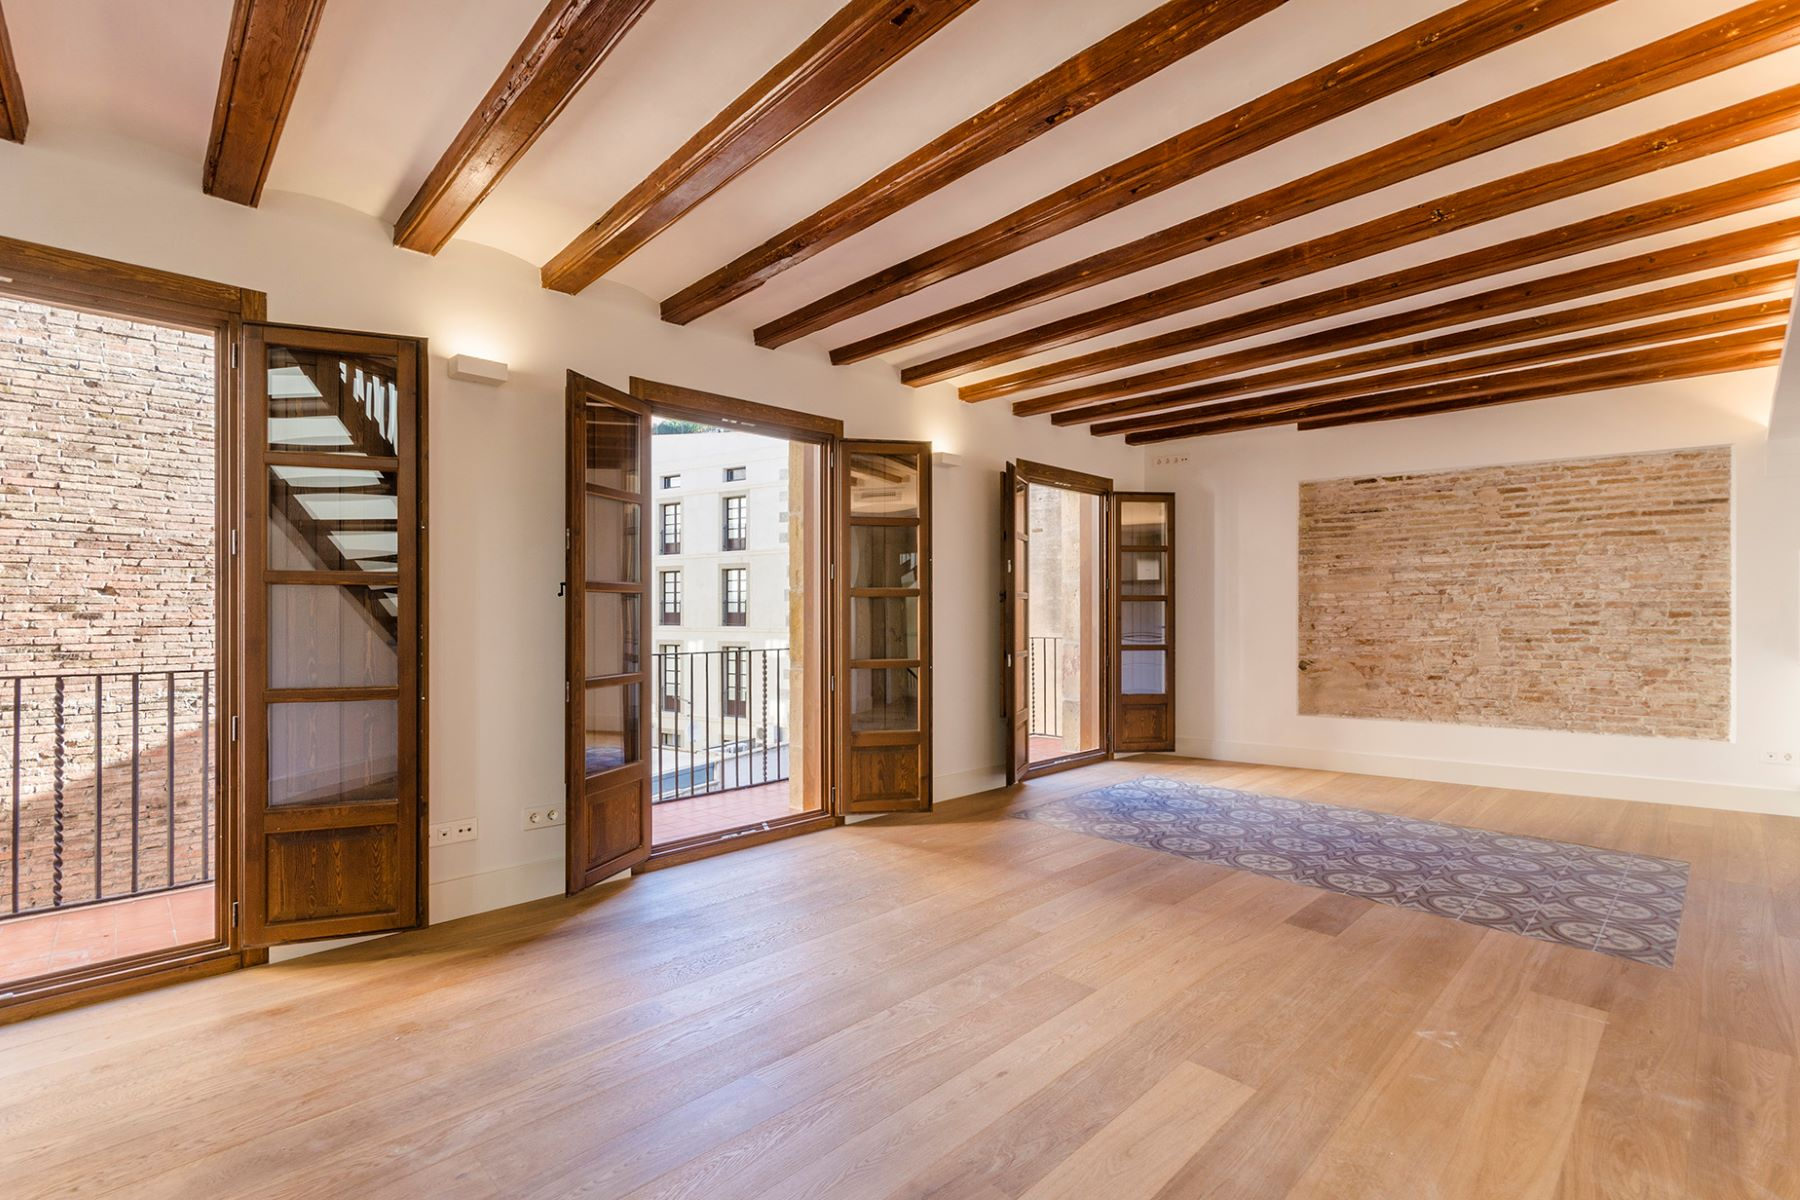 Apartment for Sale at Penthouse Duplex with 3 Bedrooms with exclusive terrace Barcelona City, Barcelona, 08002 Spain